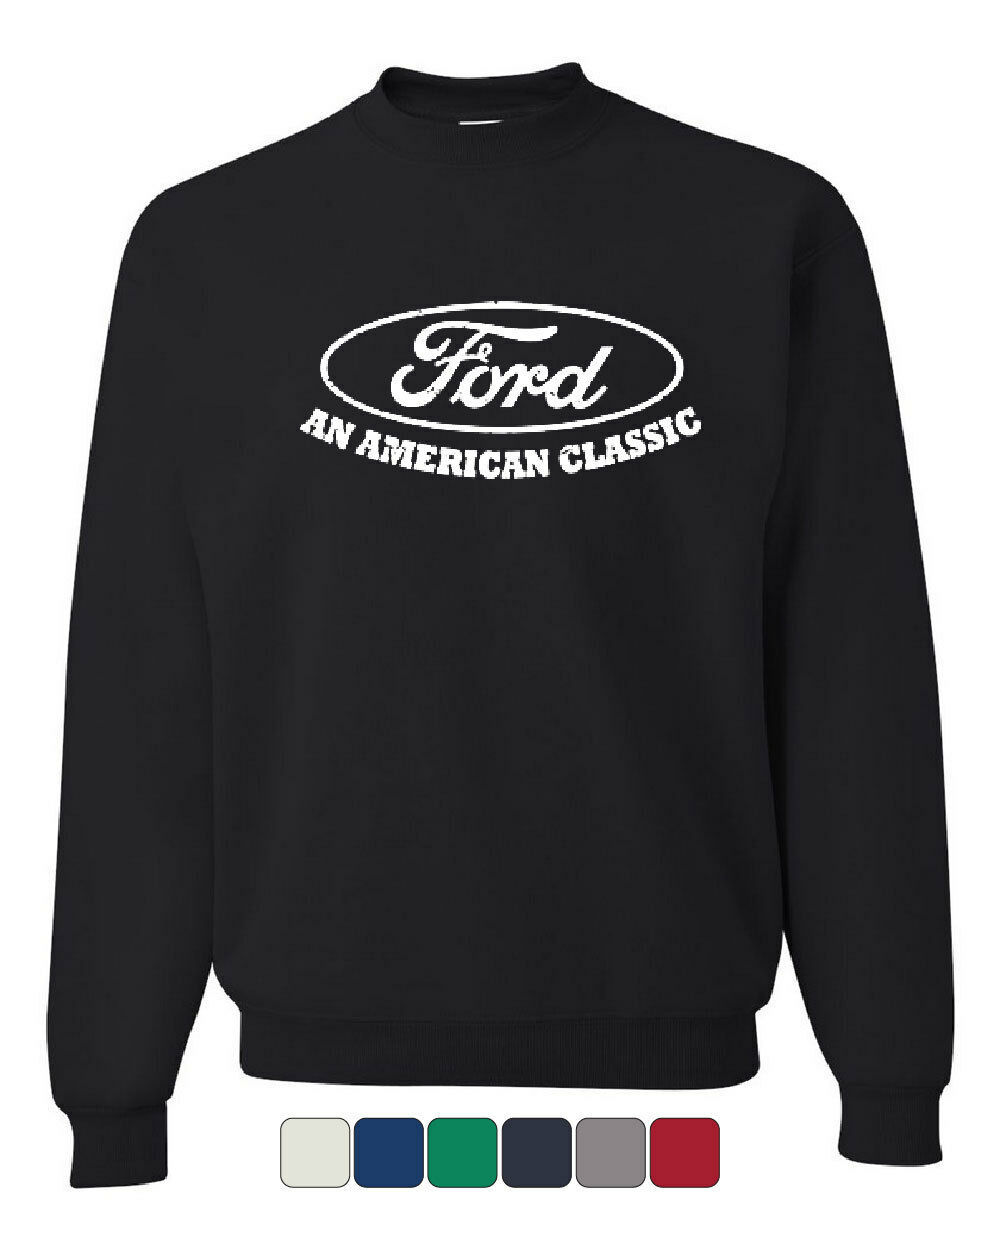 Primary image for Ford An American Classic Crew Neck Sweatshirt Ford Truck Licensed